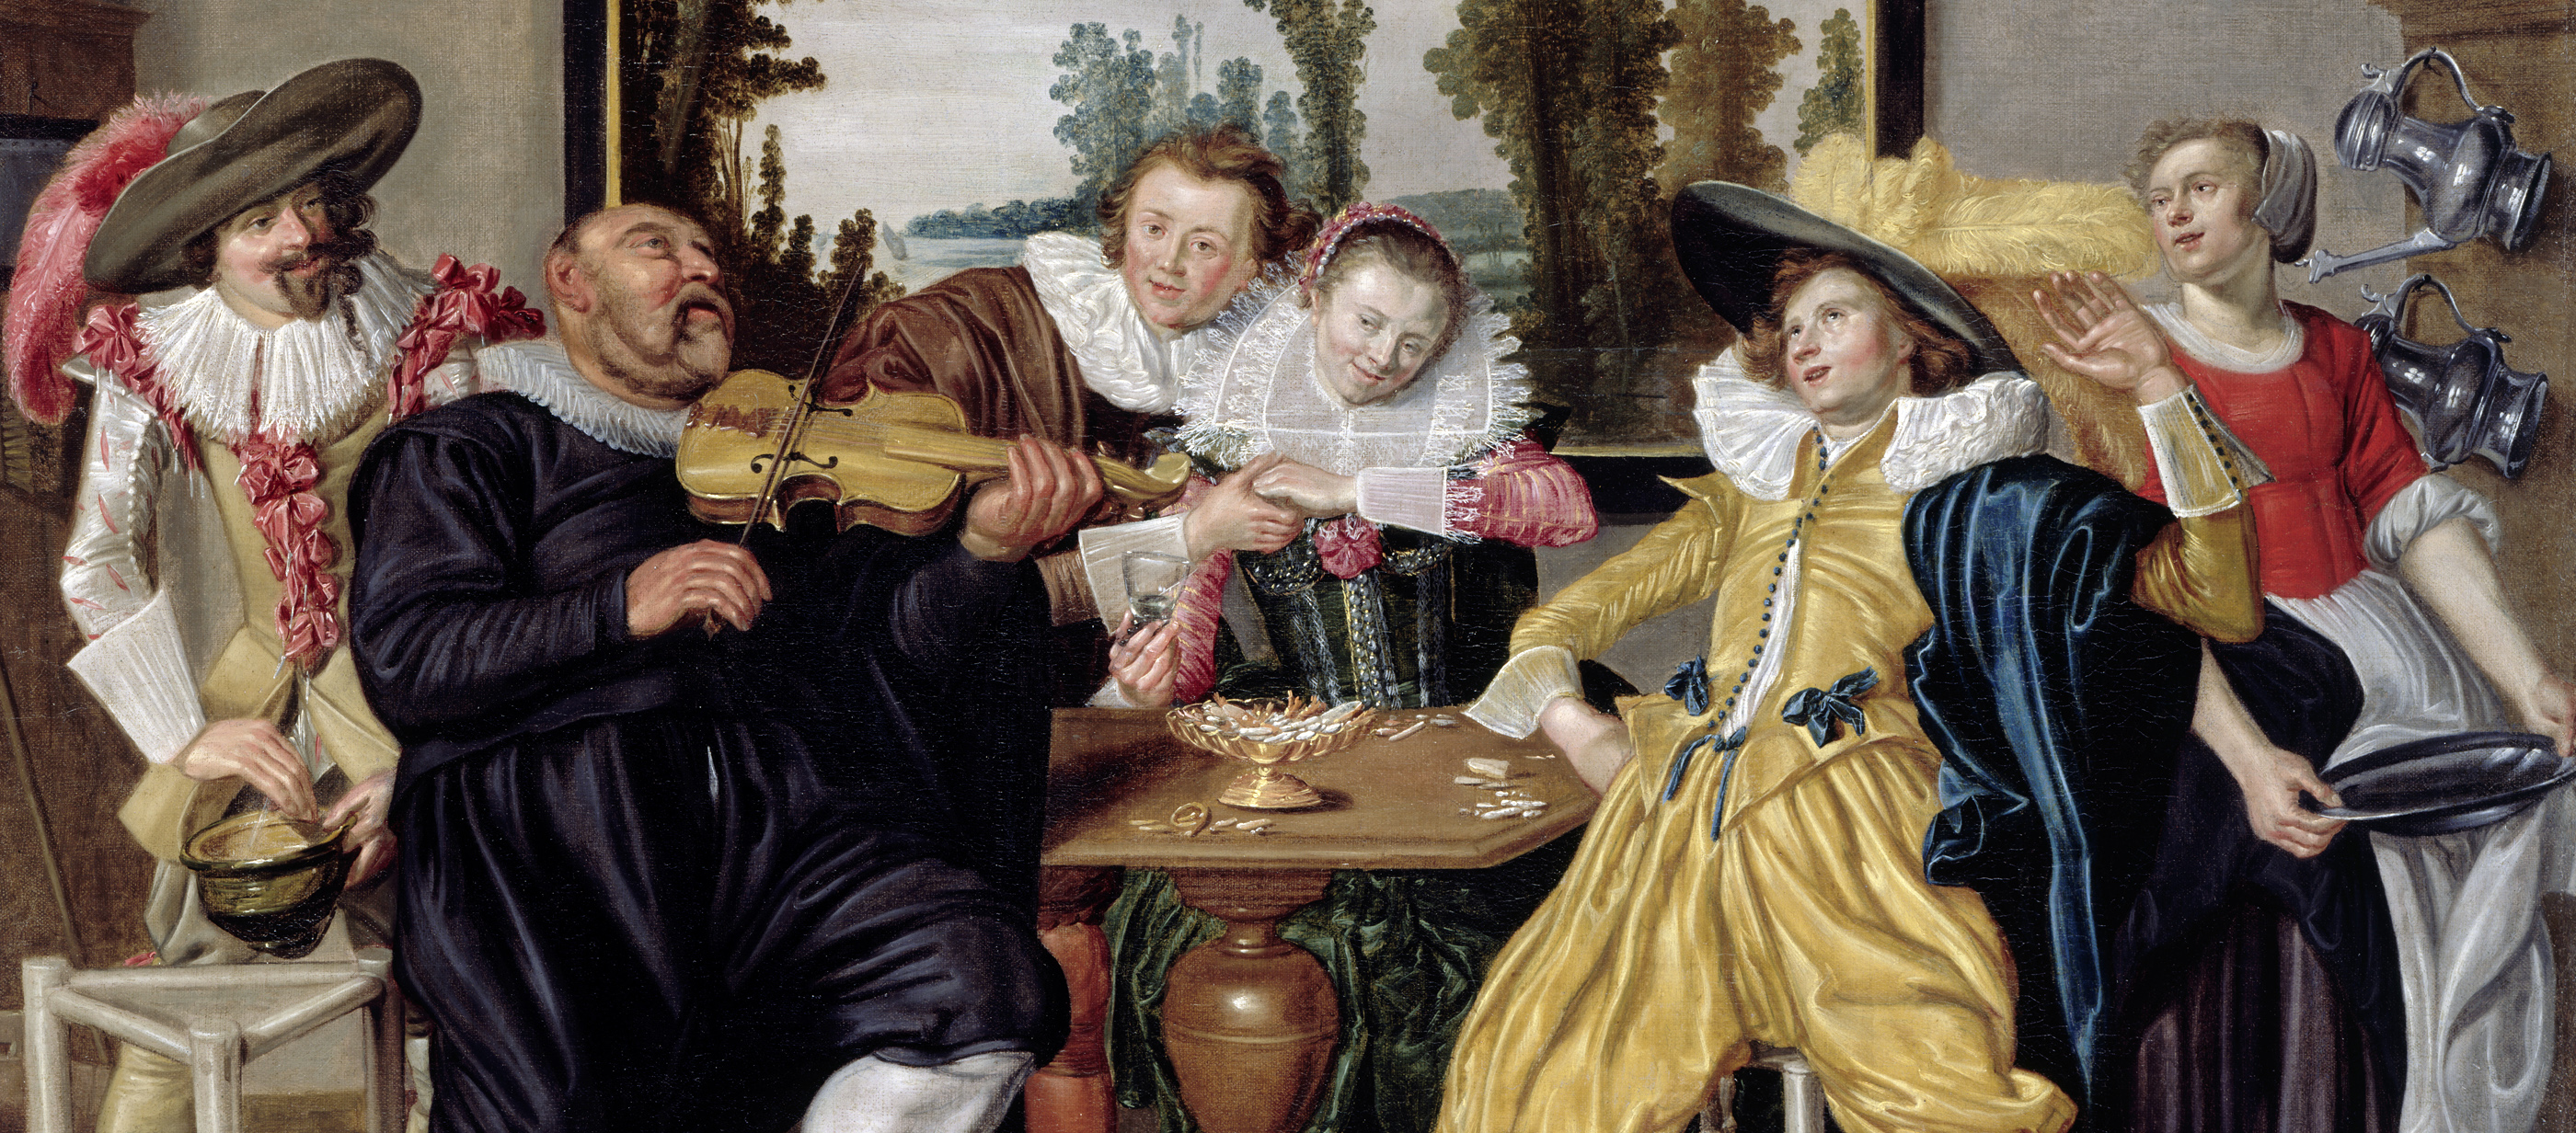 Interior with Merry Company, by Willem Pietersz Buytewech, c. 1623.